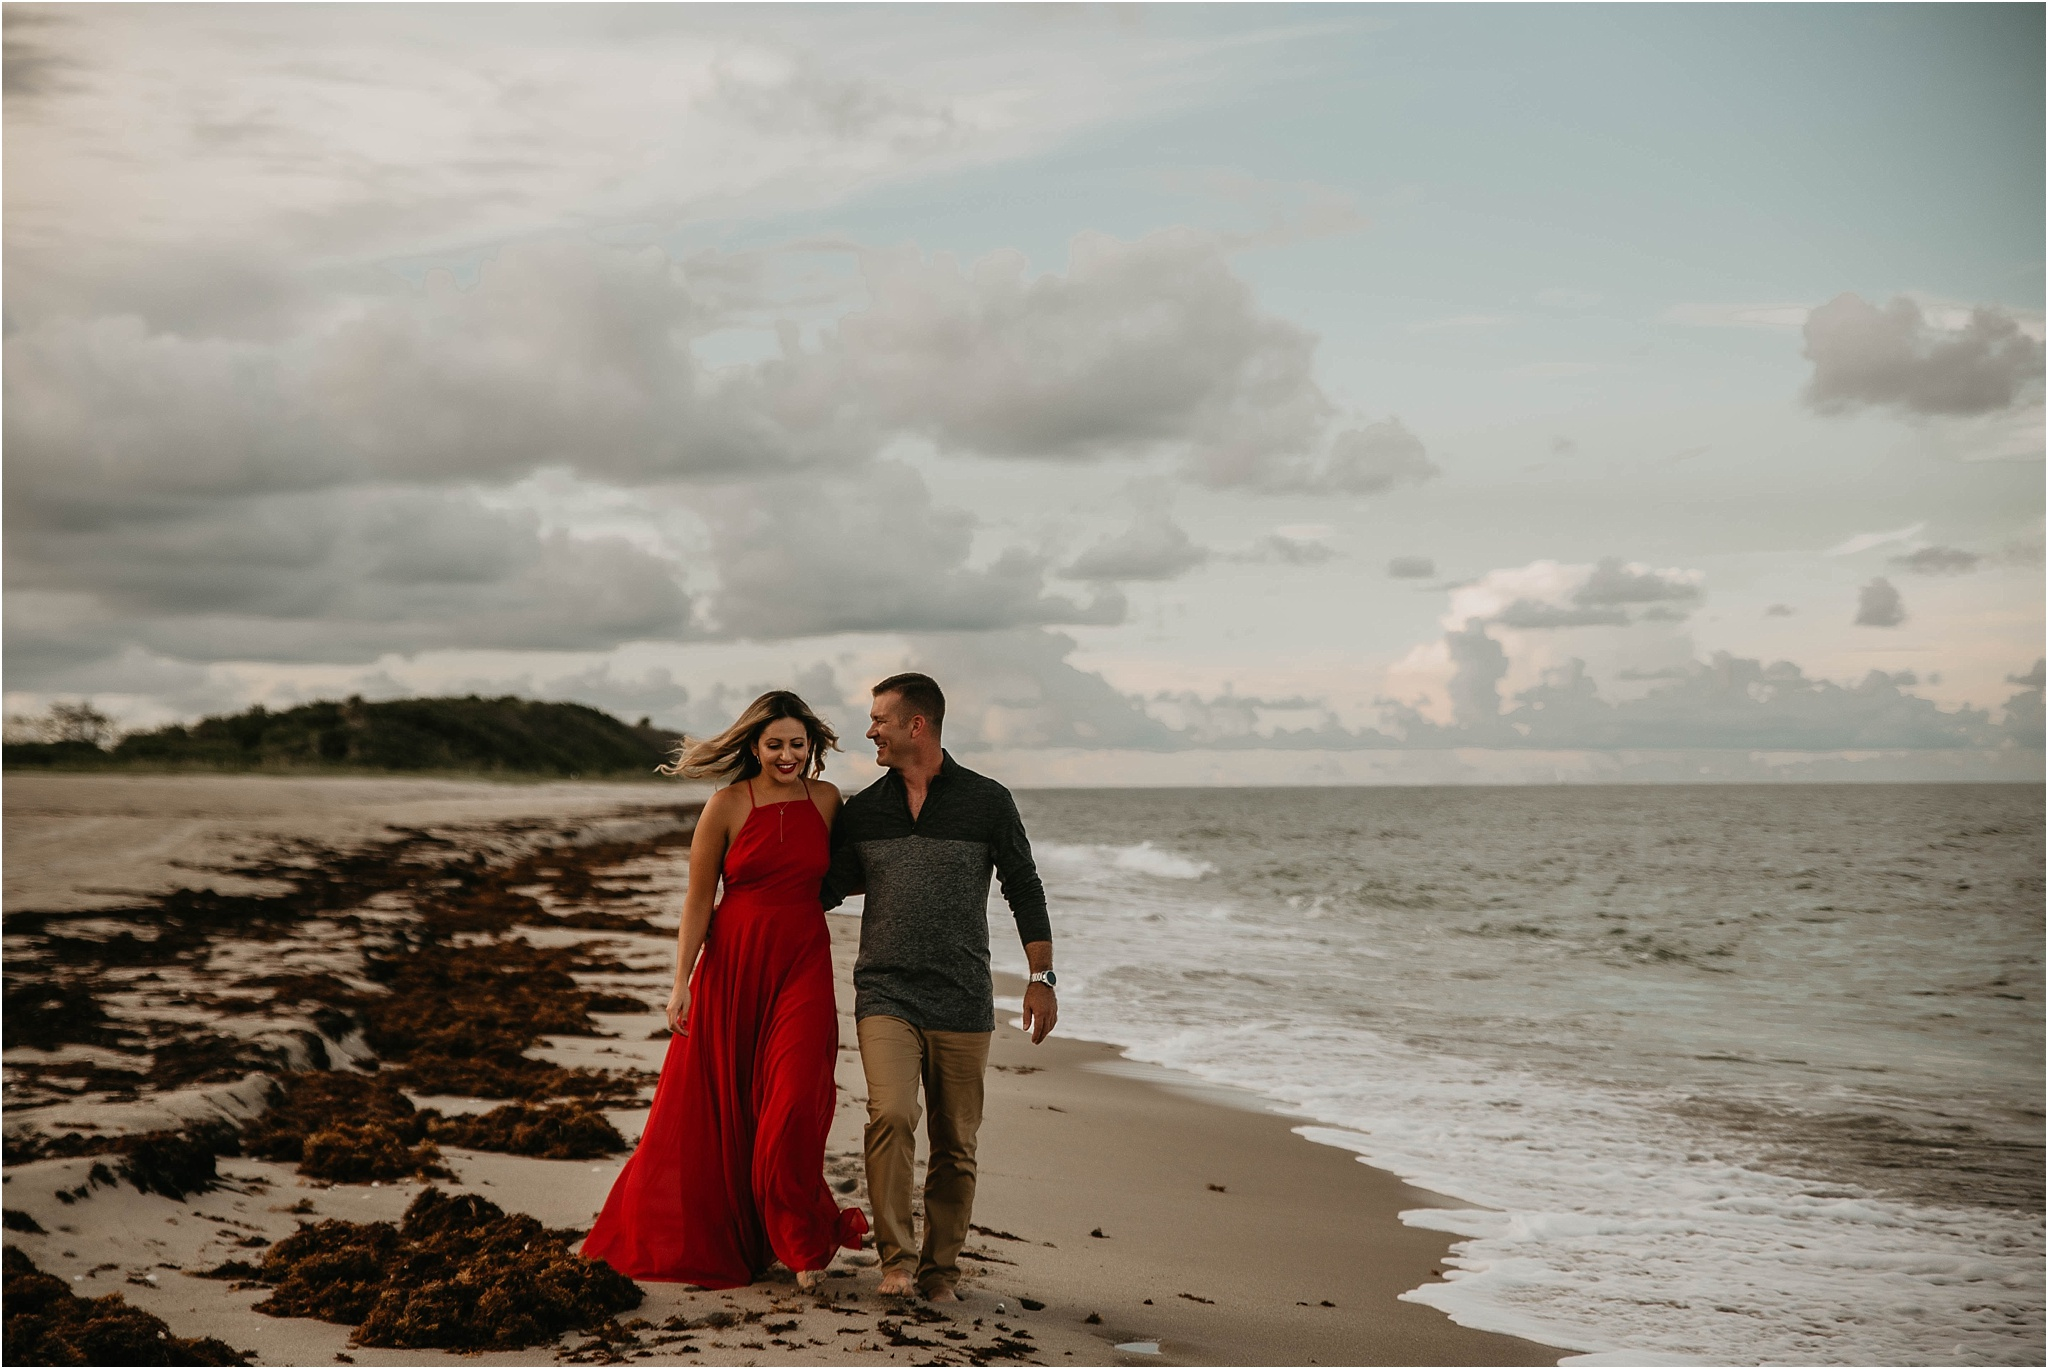 JohnDMacArthur-Beach-State-Park-engagement-photographer_0019.jpg